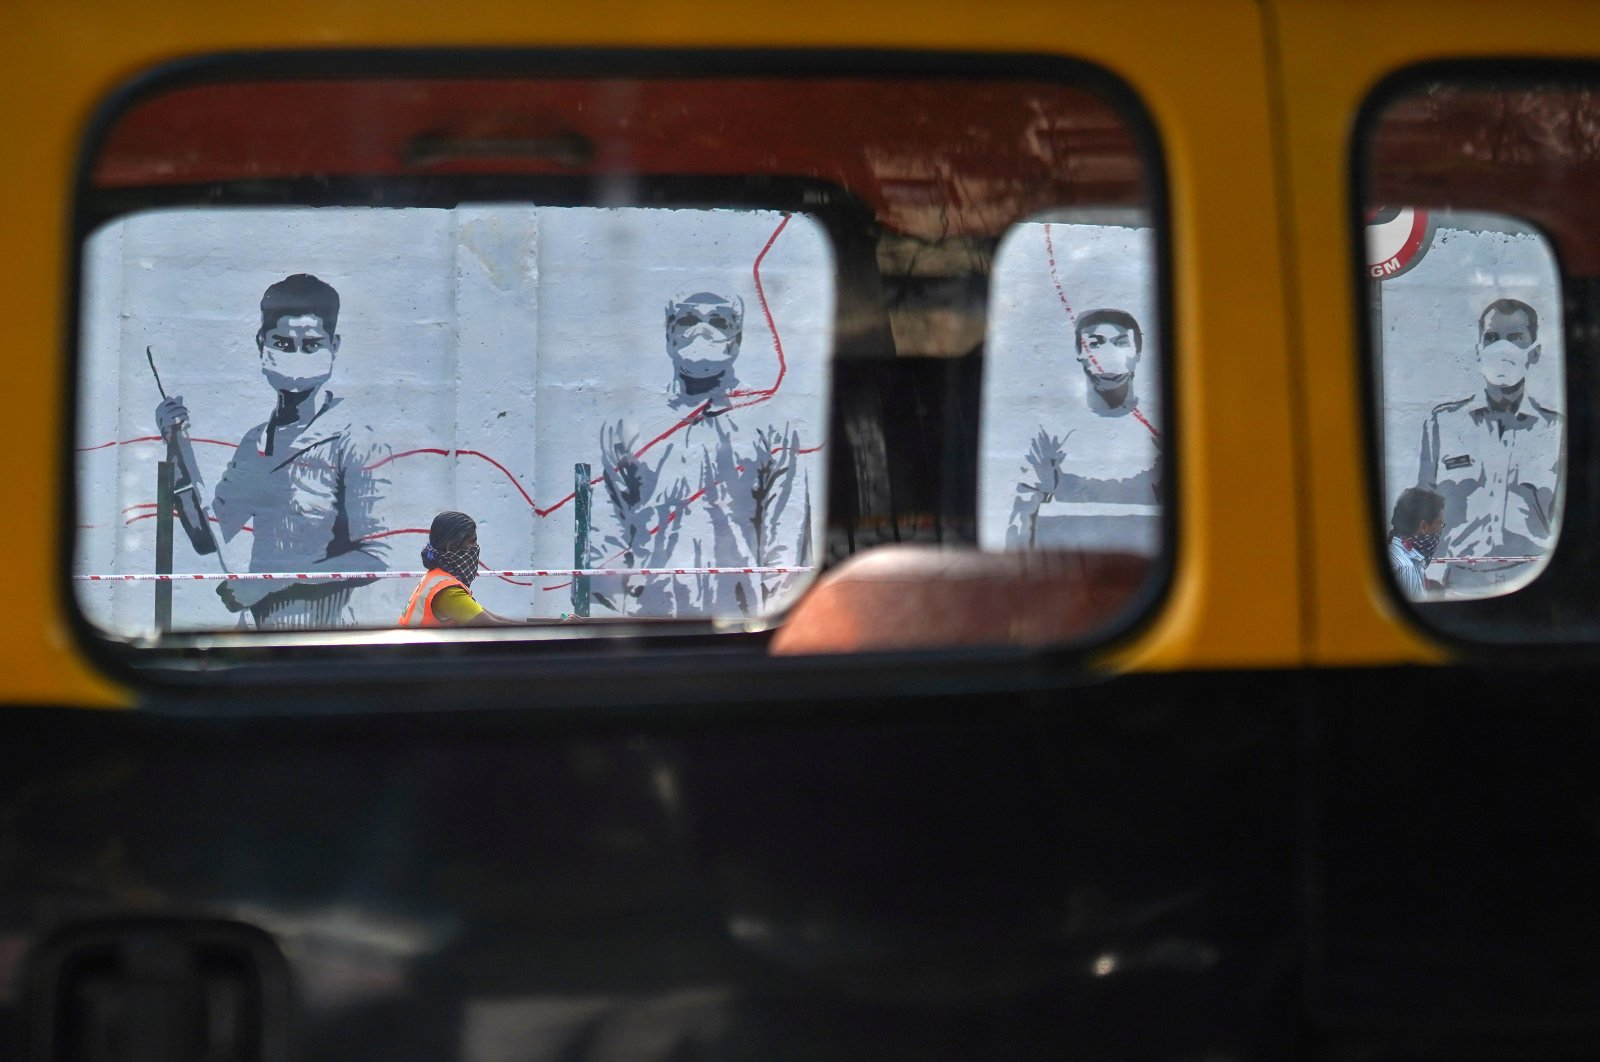 People wearing protective face masks are seen through the windows of a cab as they walk past a graffiti in Mumbai, India, June 12, 2020. (REUTERS Photo)